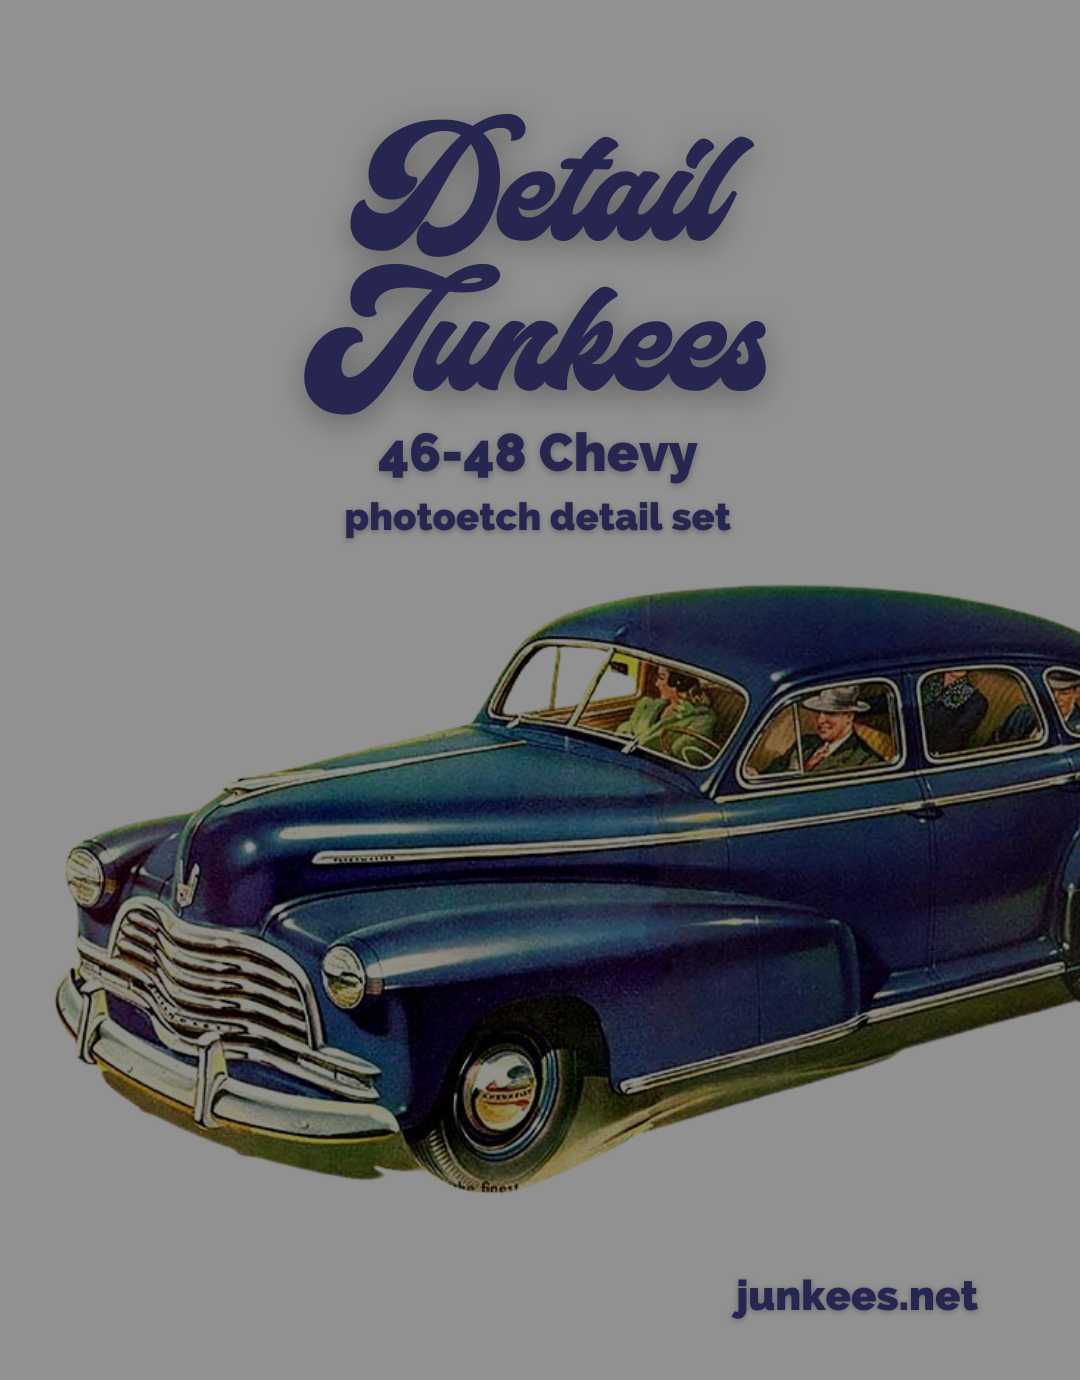 Image of 46-48 Chevy Detail Set